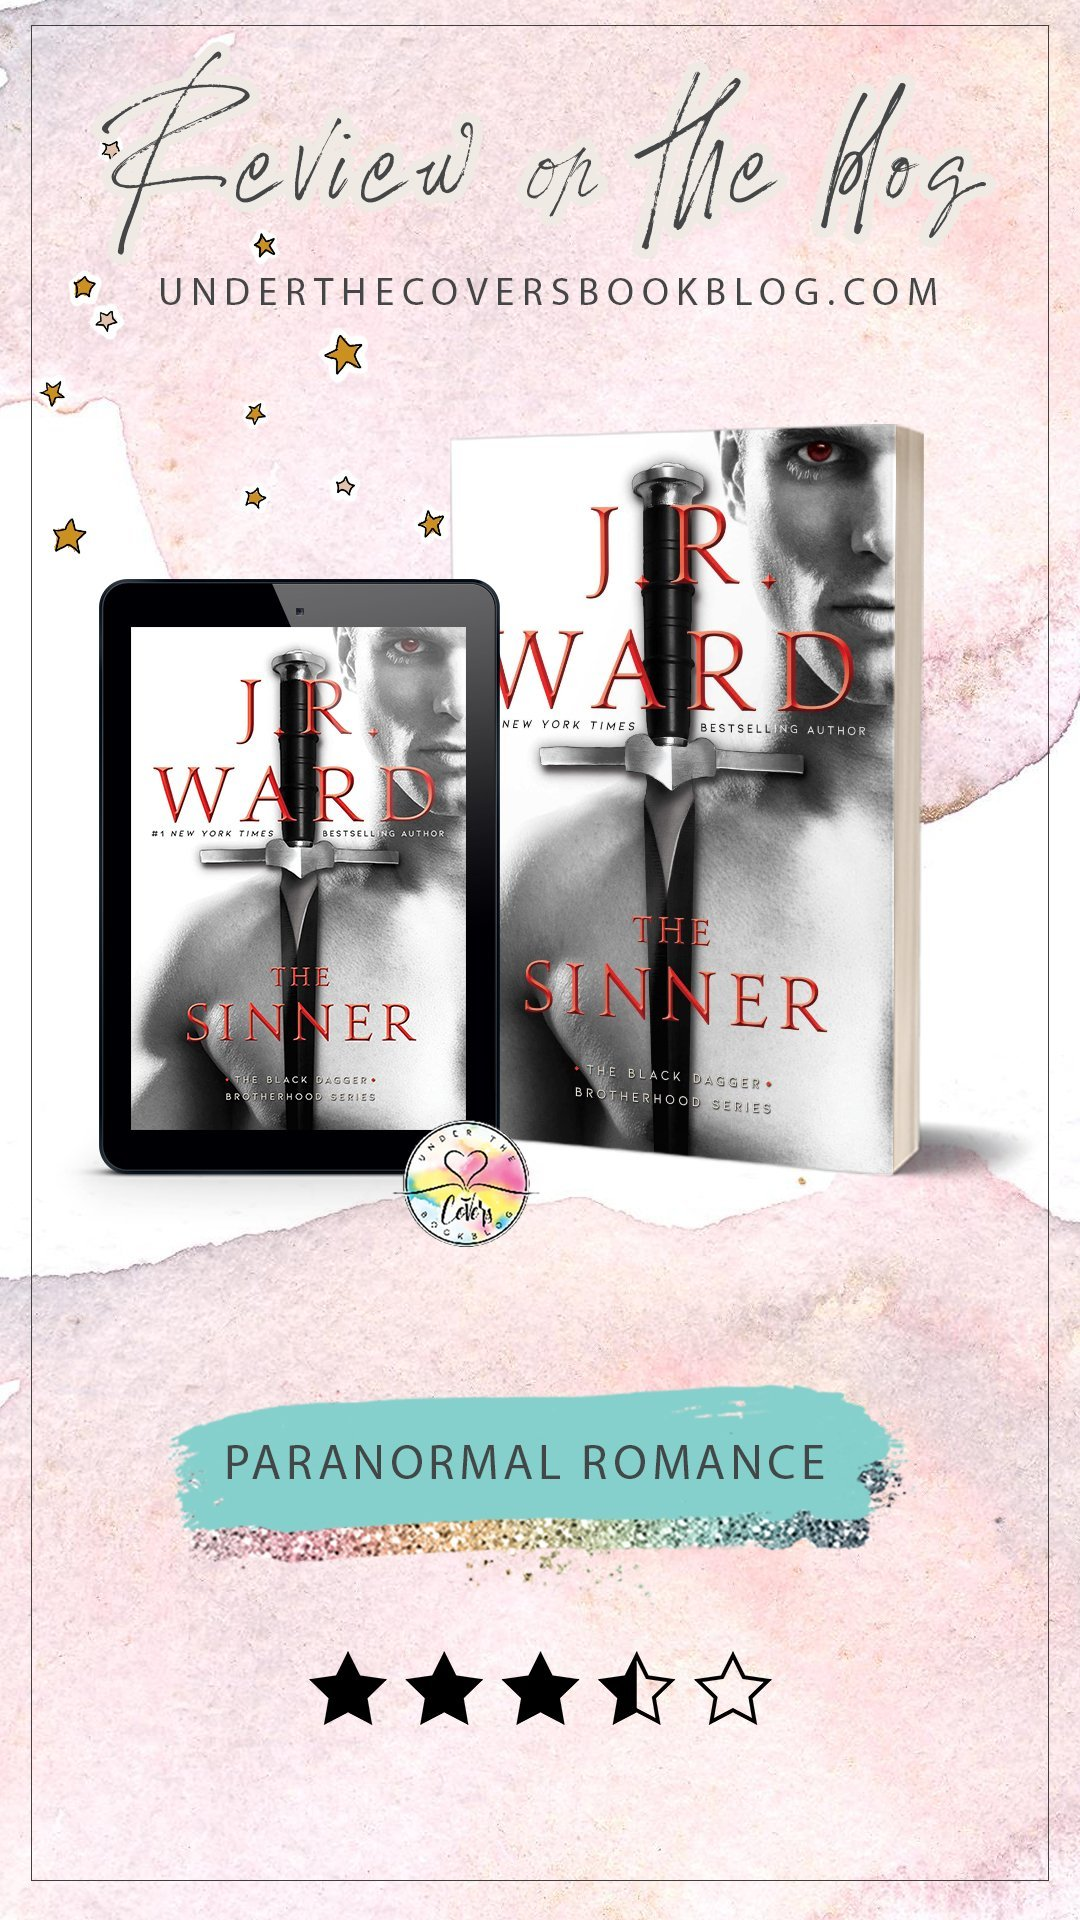 ARC Review: The Sinner by J.R. Ward